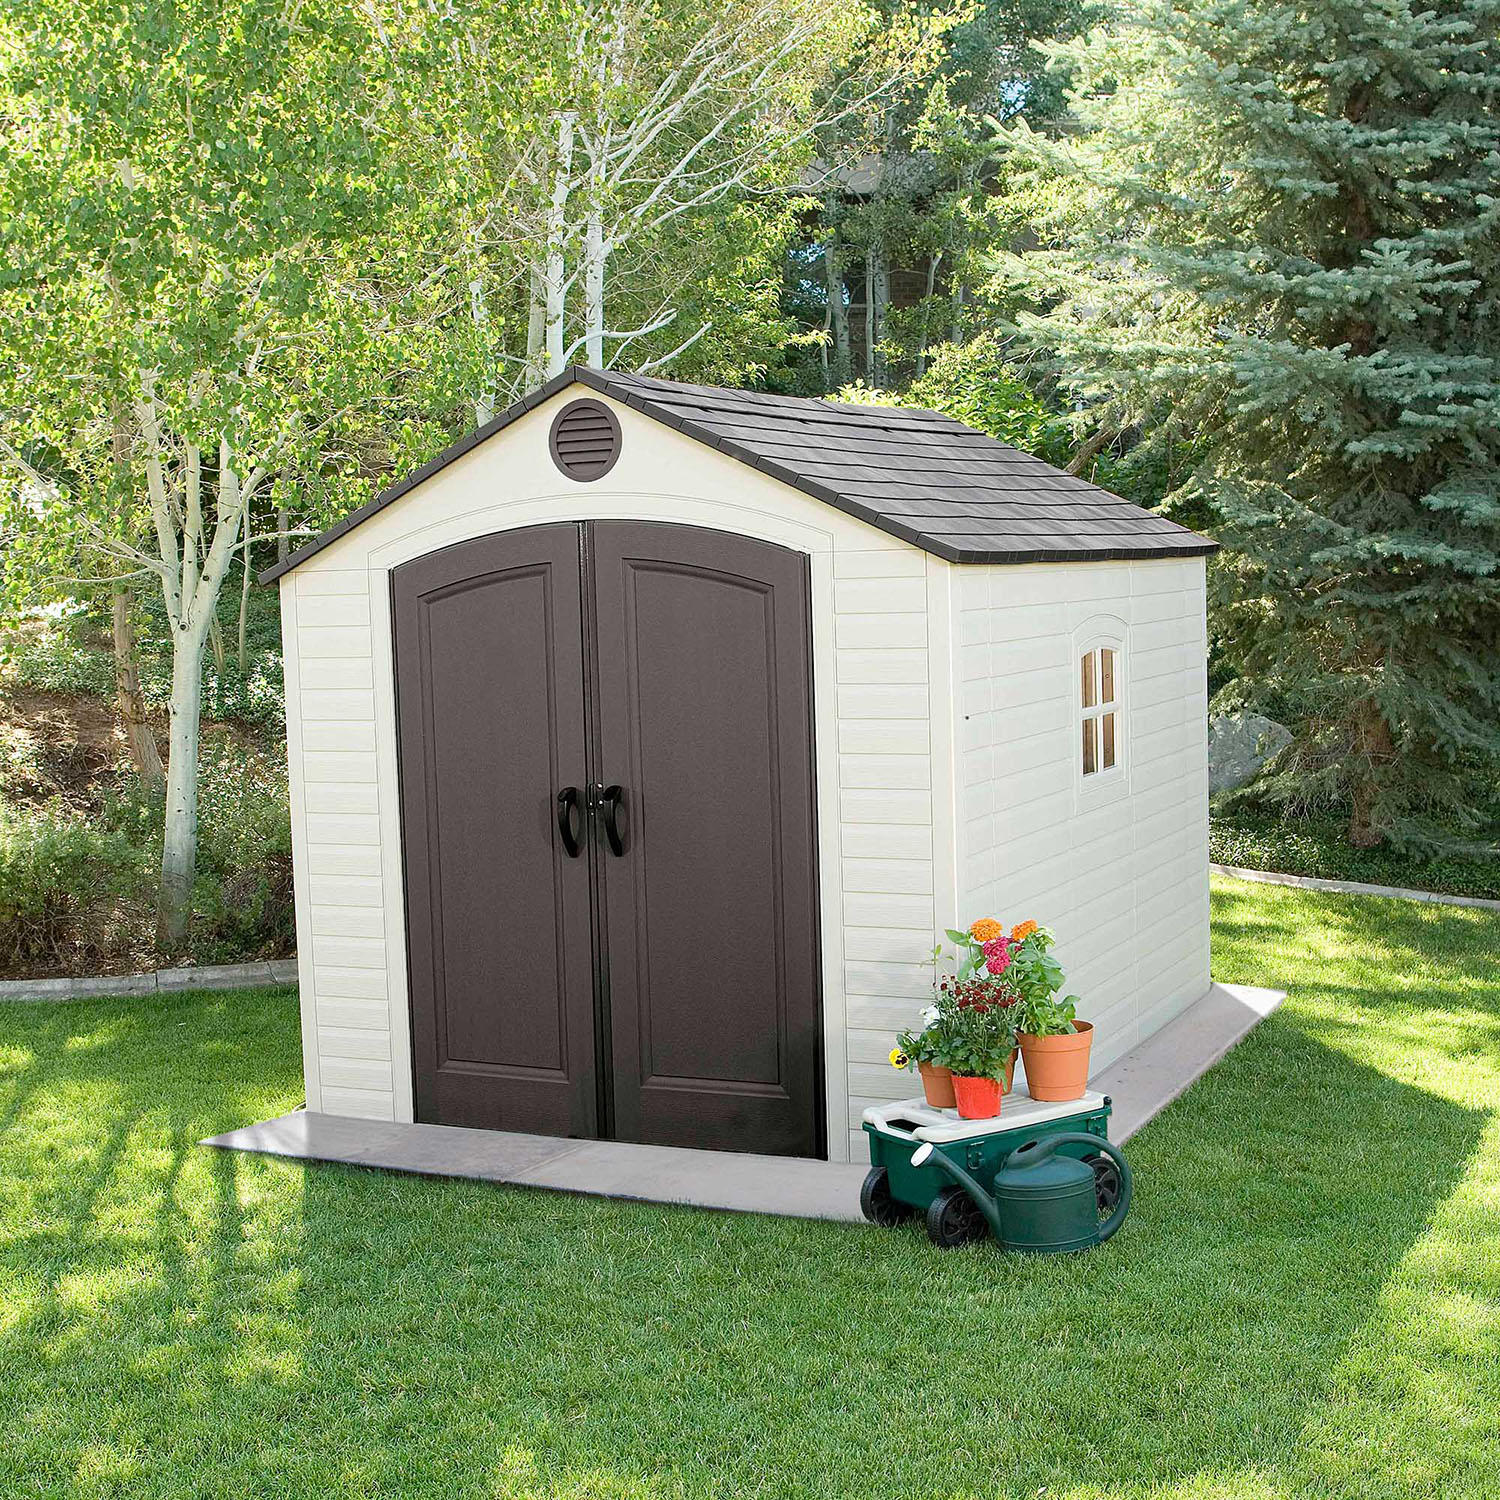 Lifetime 6405 8-by-10-Foot Outdoor Storage Shed with Window, Skylights, Shelving